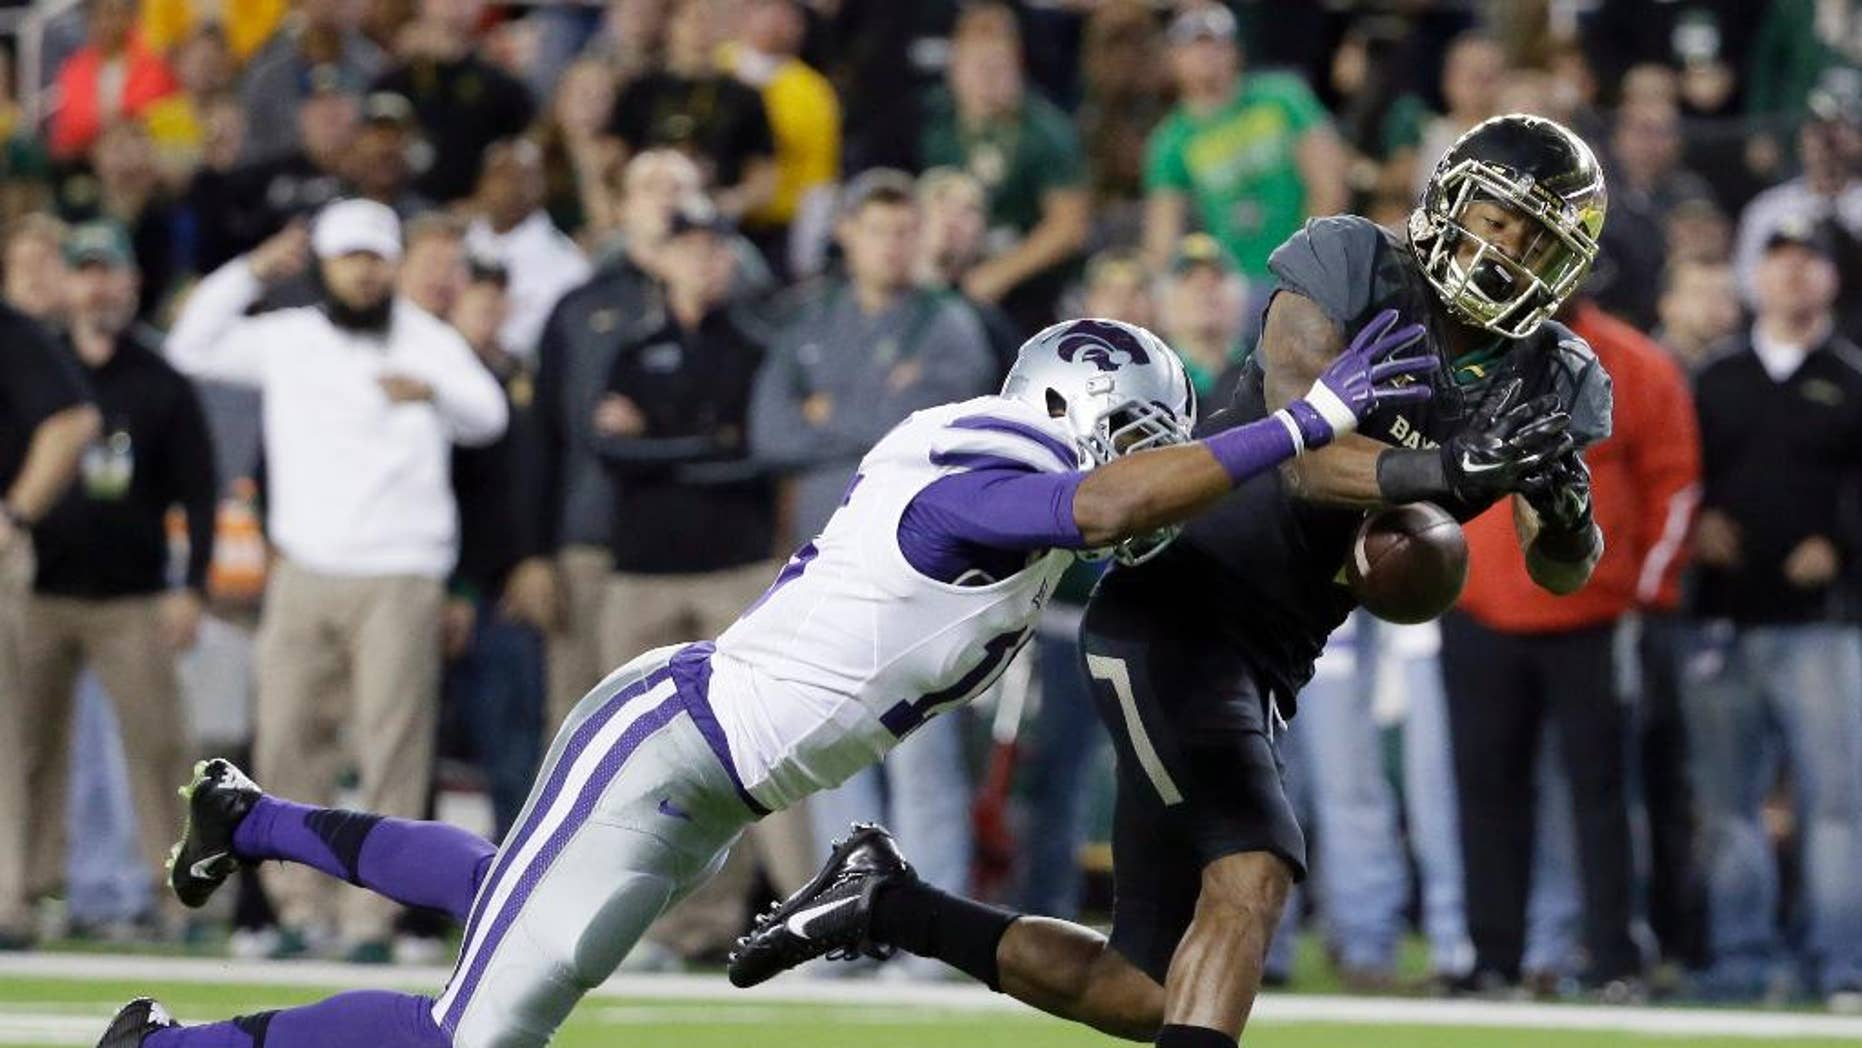 Kansas State defensive back Randall Evans (15) breaks up a pass intended for Baylor's Corey Coleman (1) in the first half of an NCAA college football game, Saturday, Dec. 6, 2014, in Waco, Texas. (AP Photo/Tony Gutierrez)